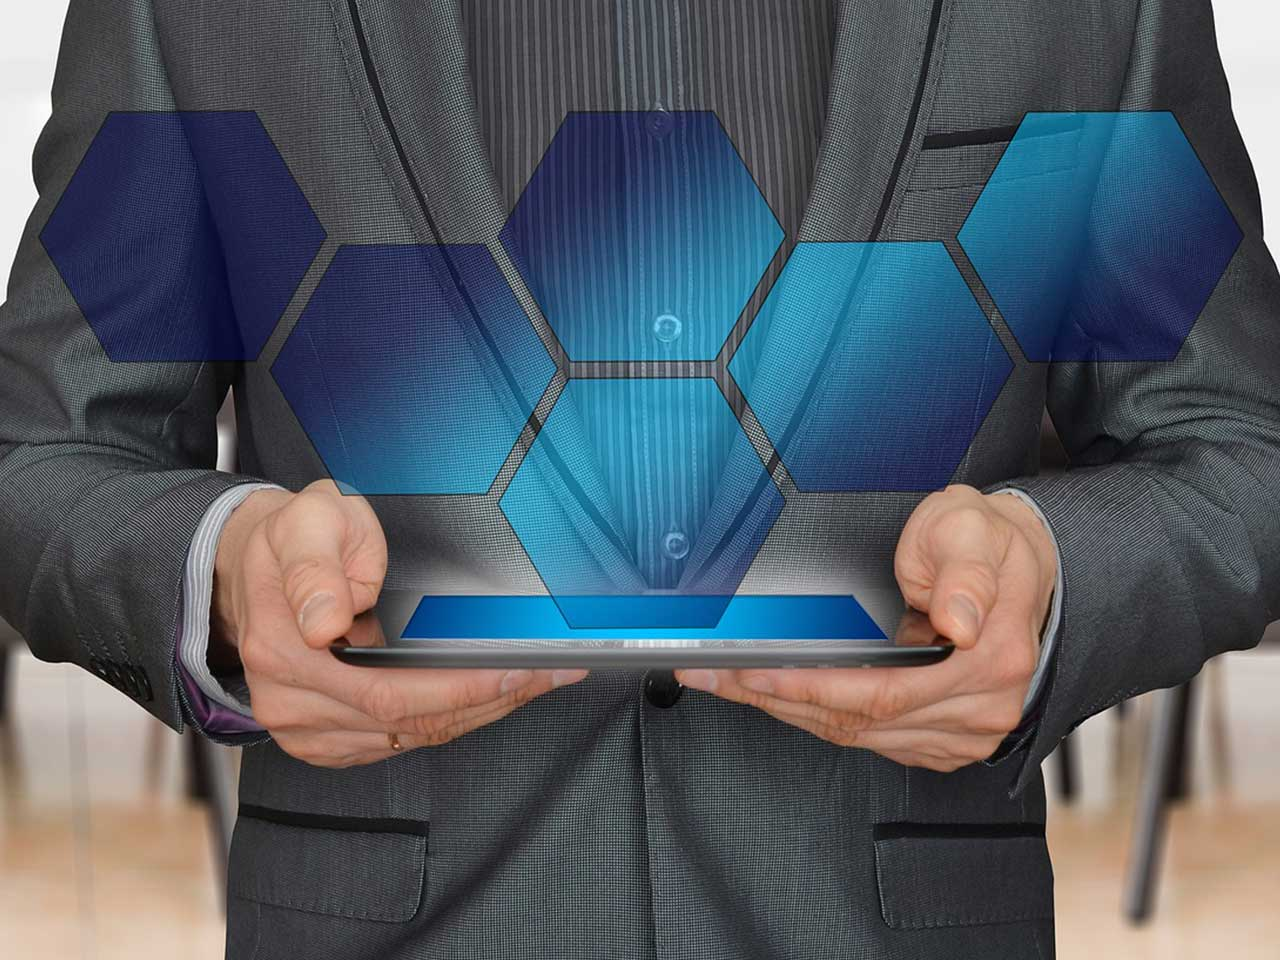 man holding an iPad showing a hexagon hologram